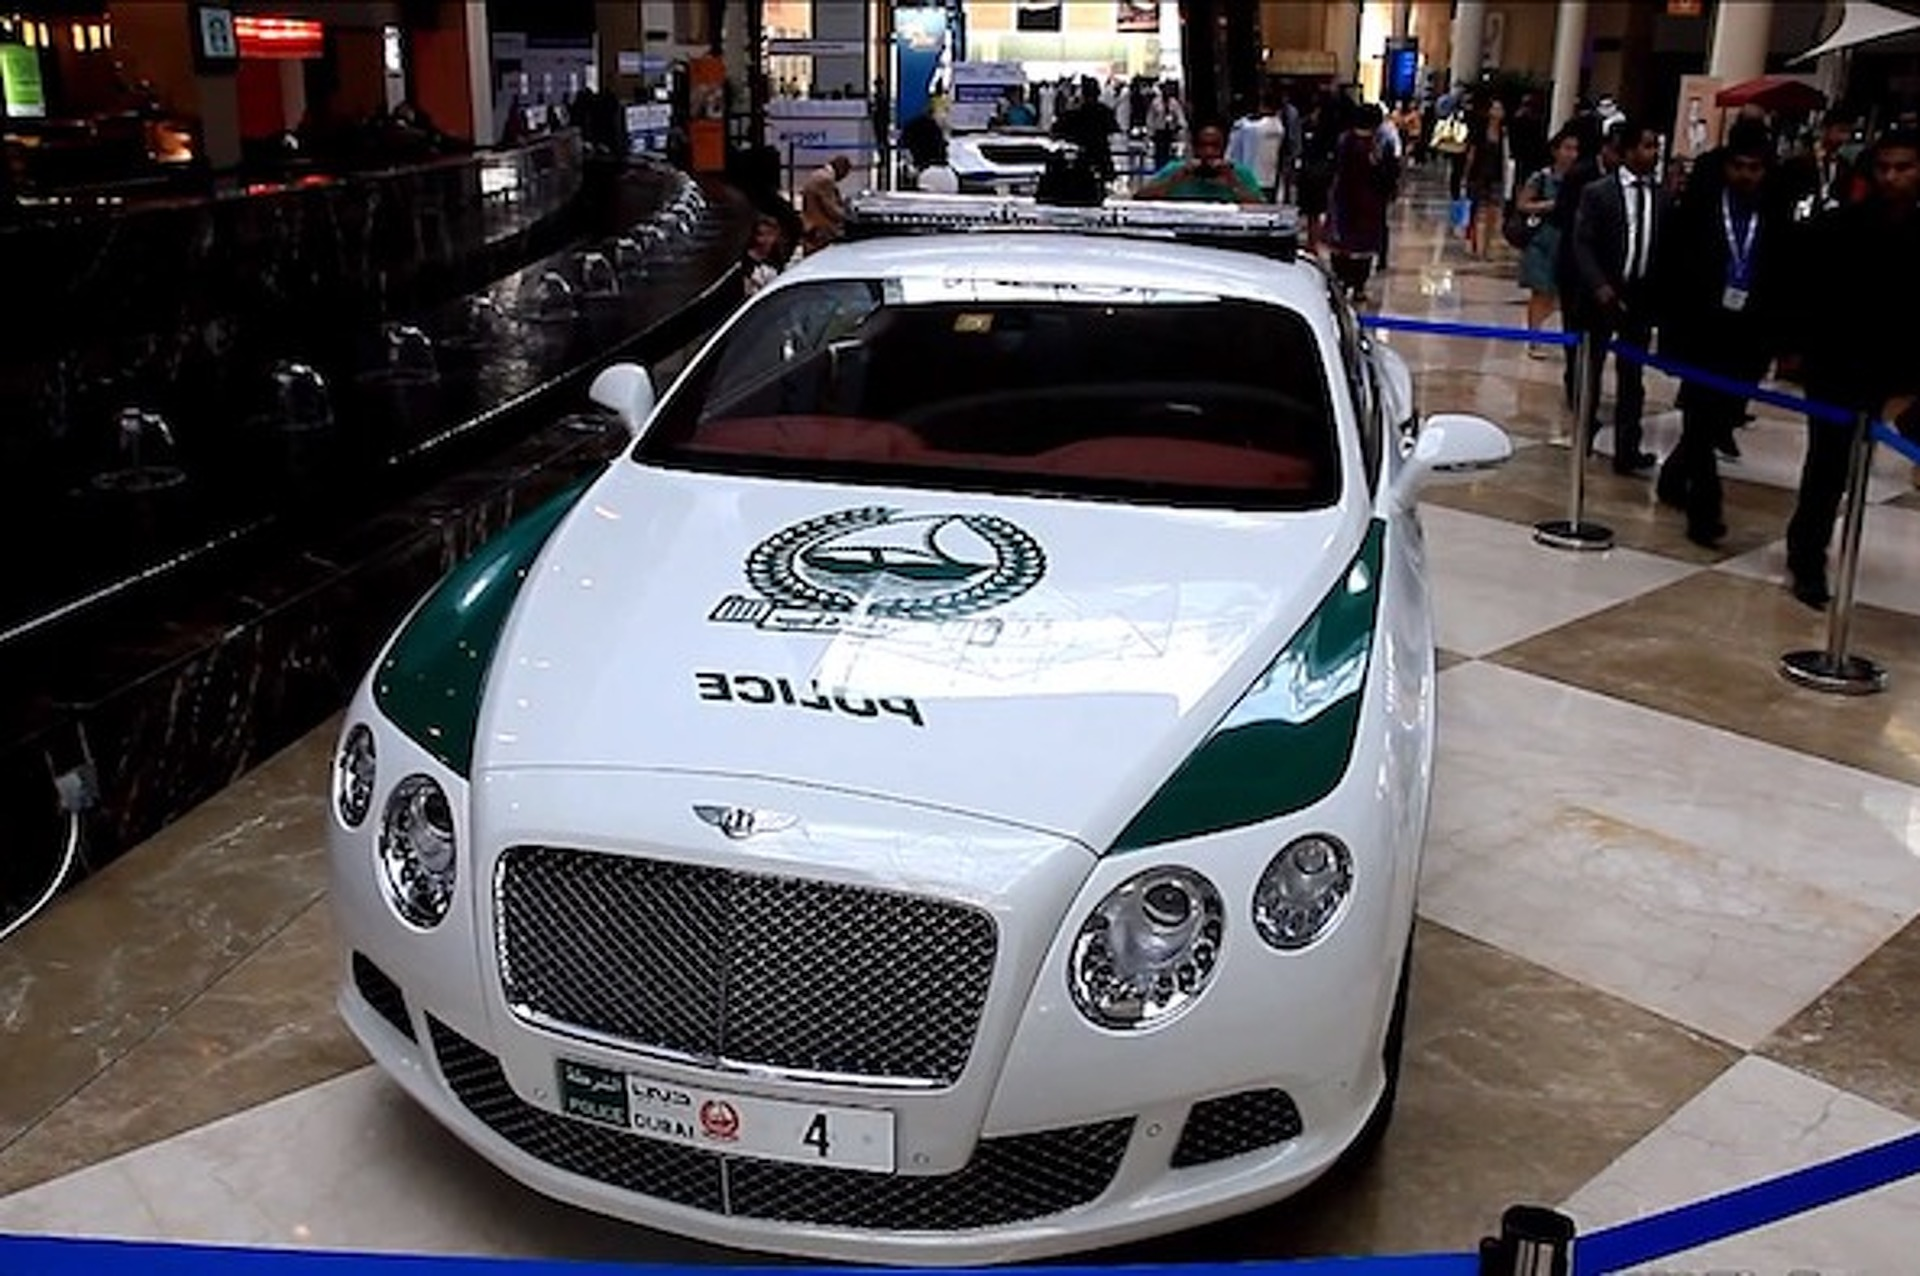 The Many Rides of the Dubai Police Department